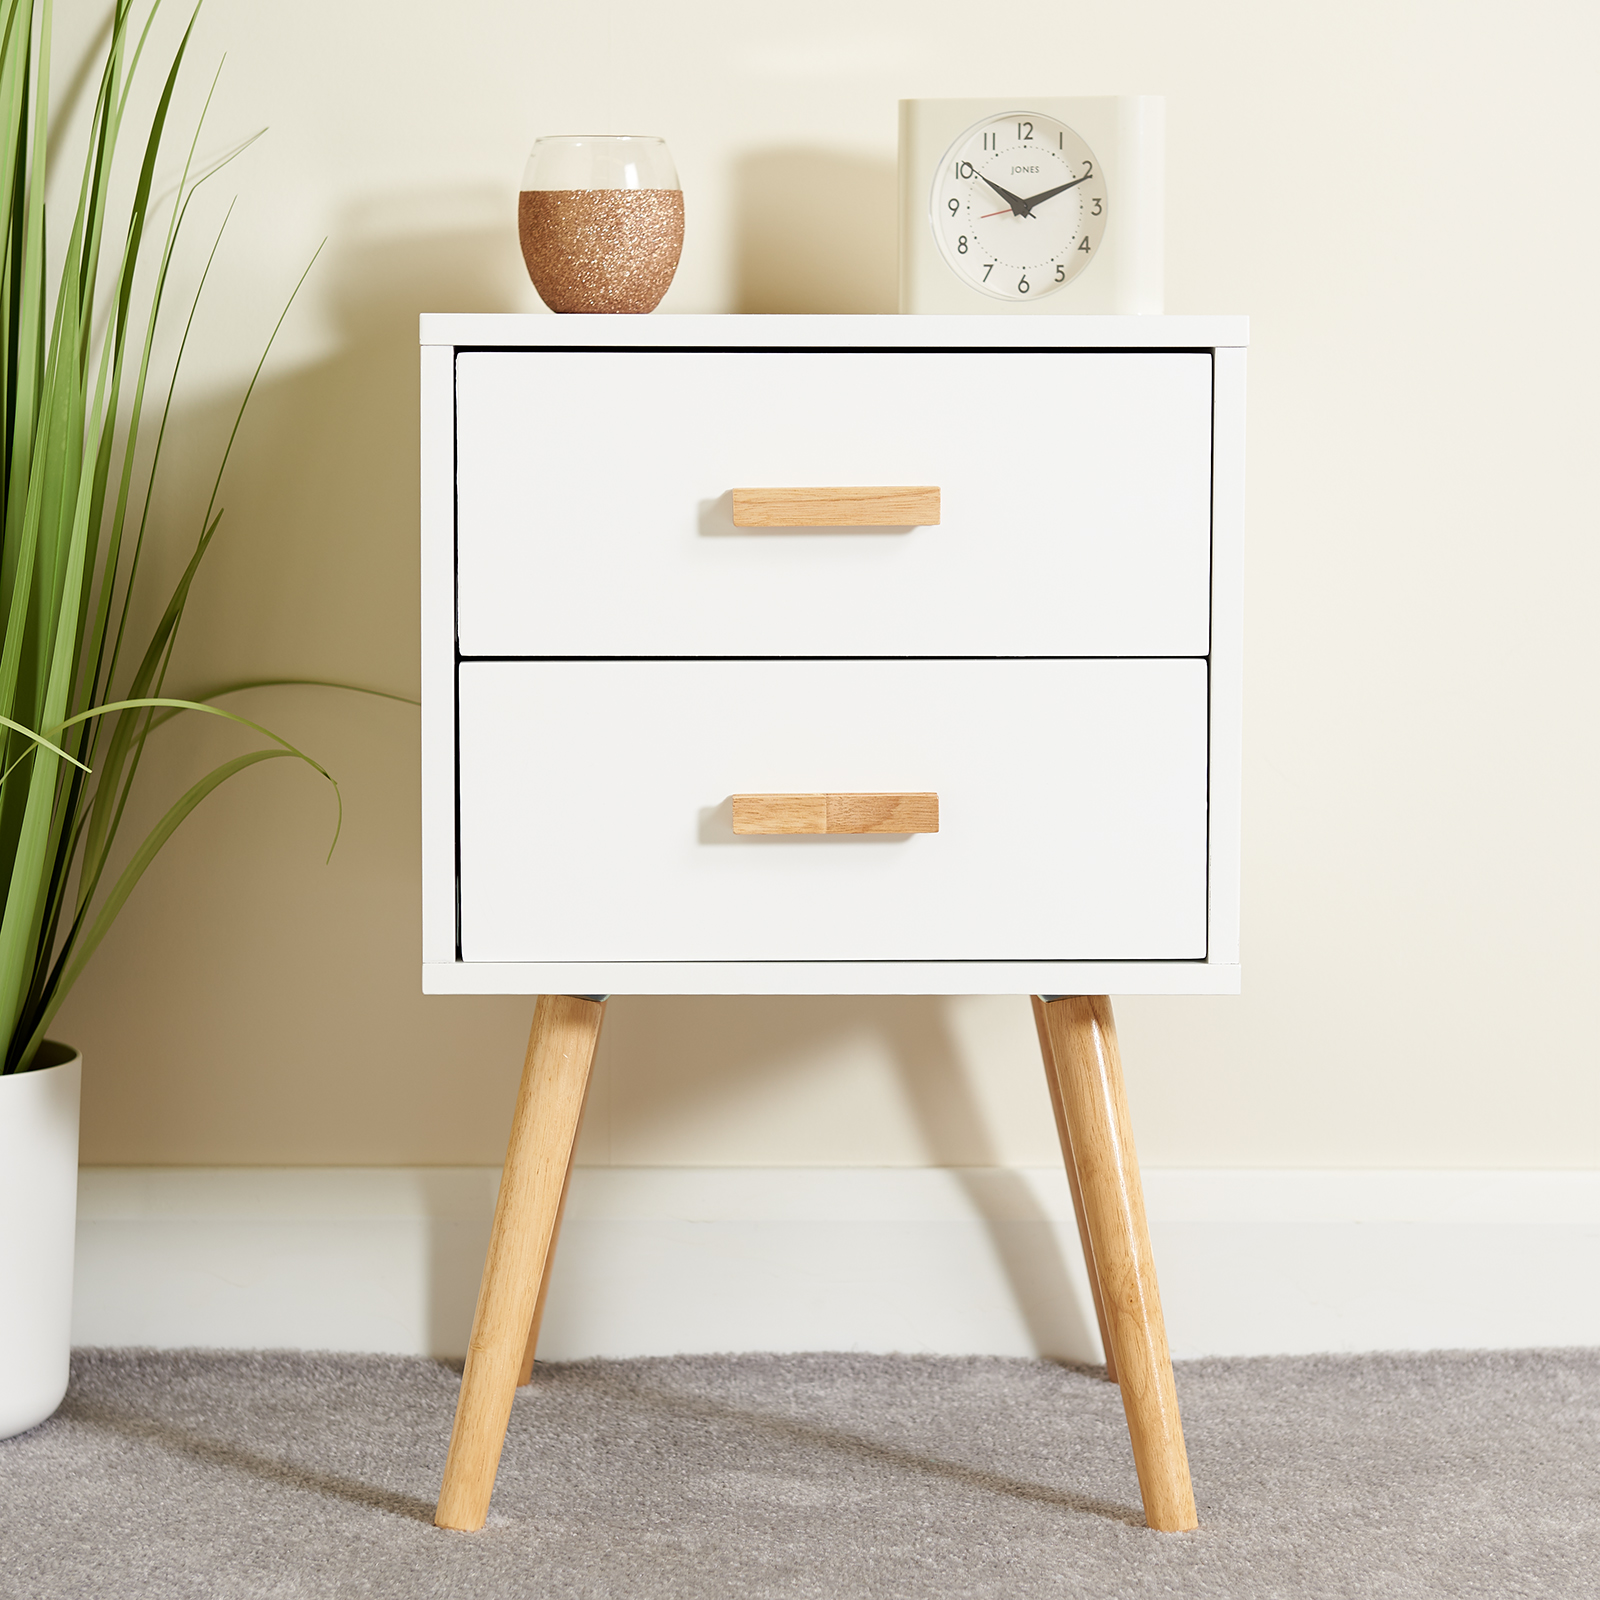 promo code b52ea 9befa Details about HARTLEYS 2 DRAWER WHITE BEDSIDE TABLE WOOD LEGS SCANDINAVIAN  RETRO BEDROOM UNIT